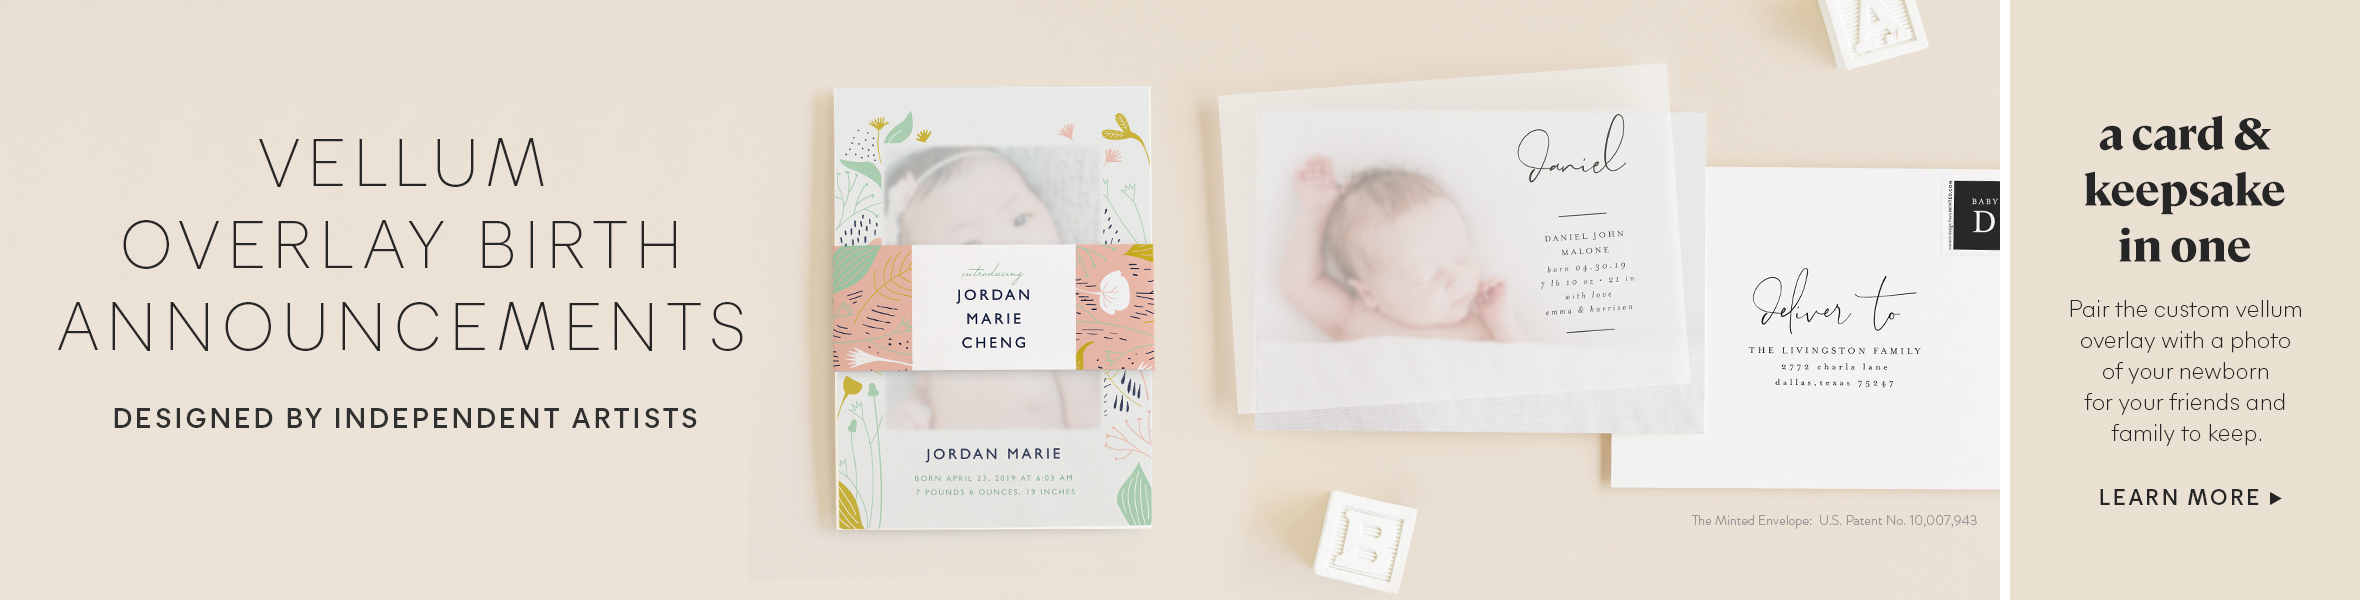 Vellum Birth Announcements